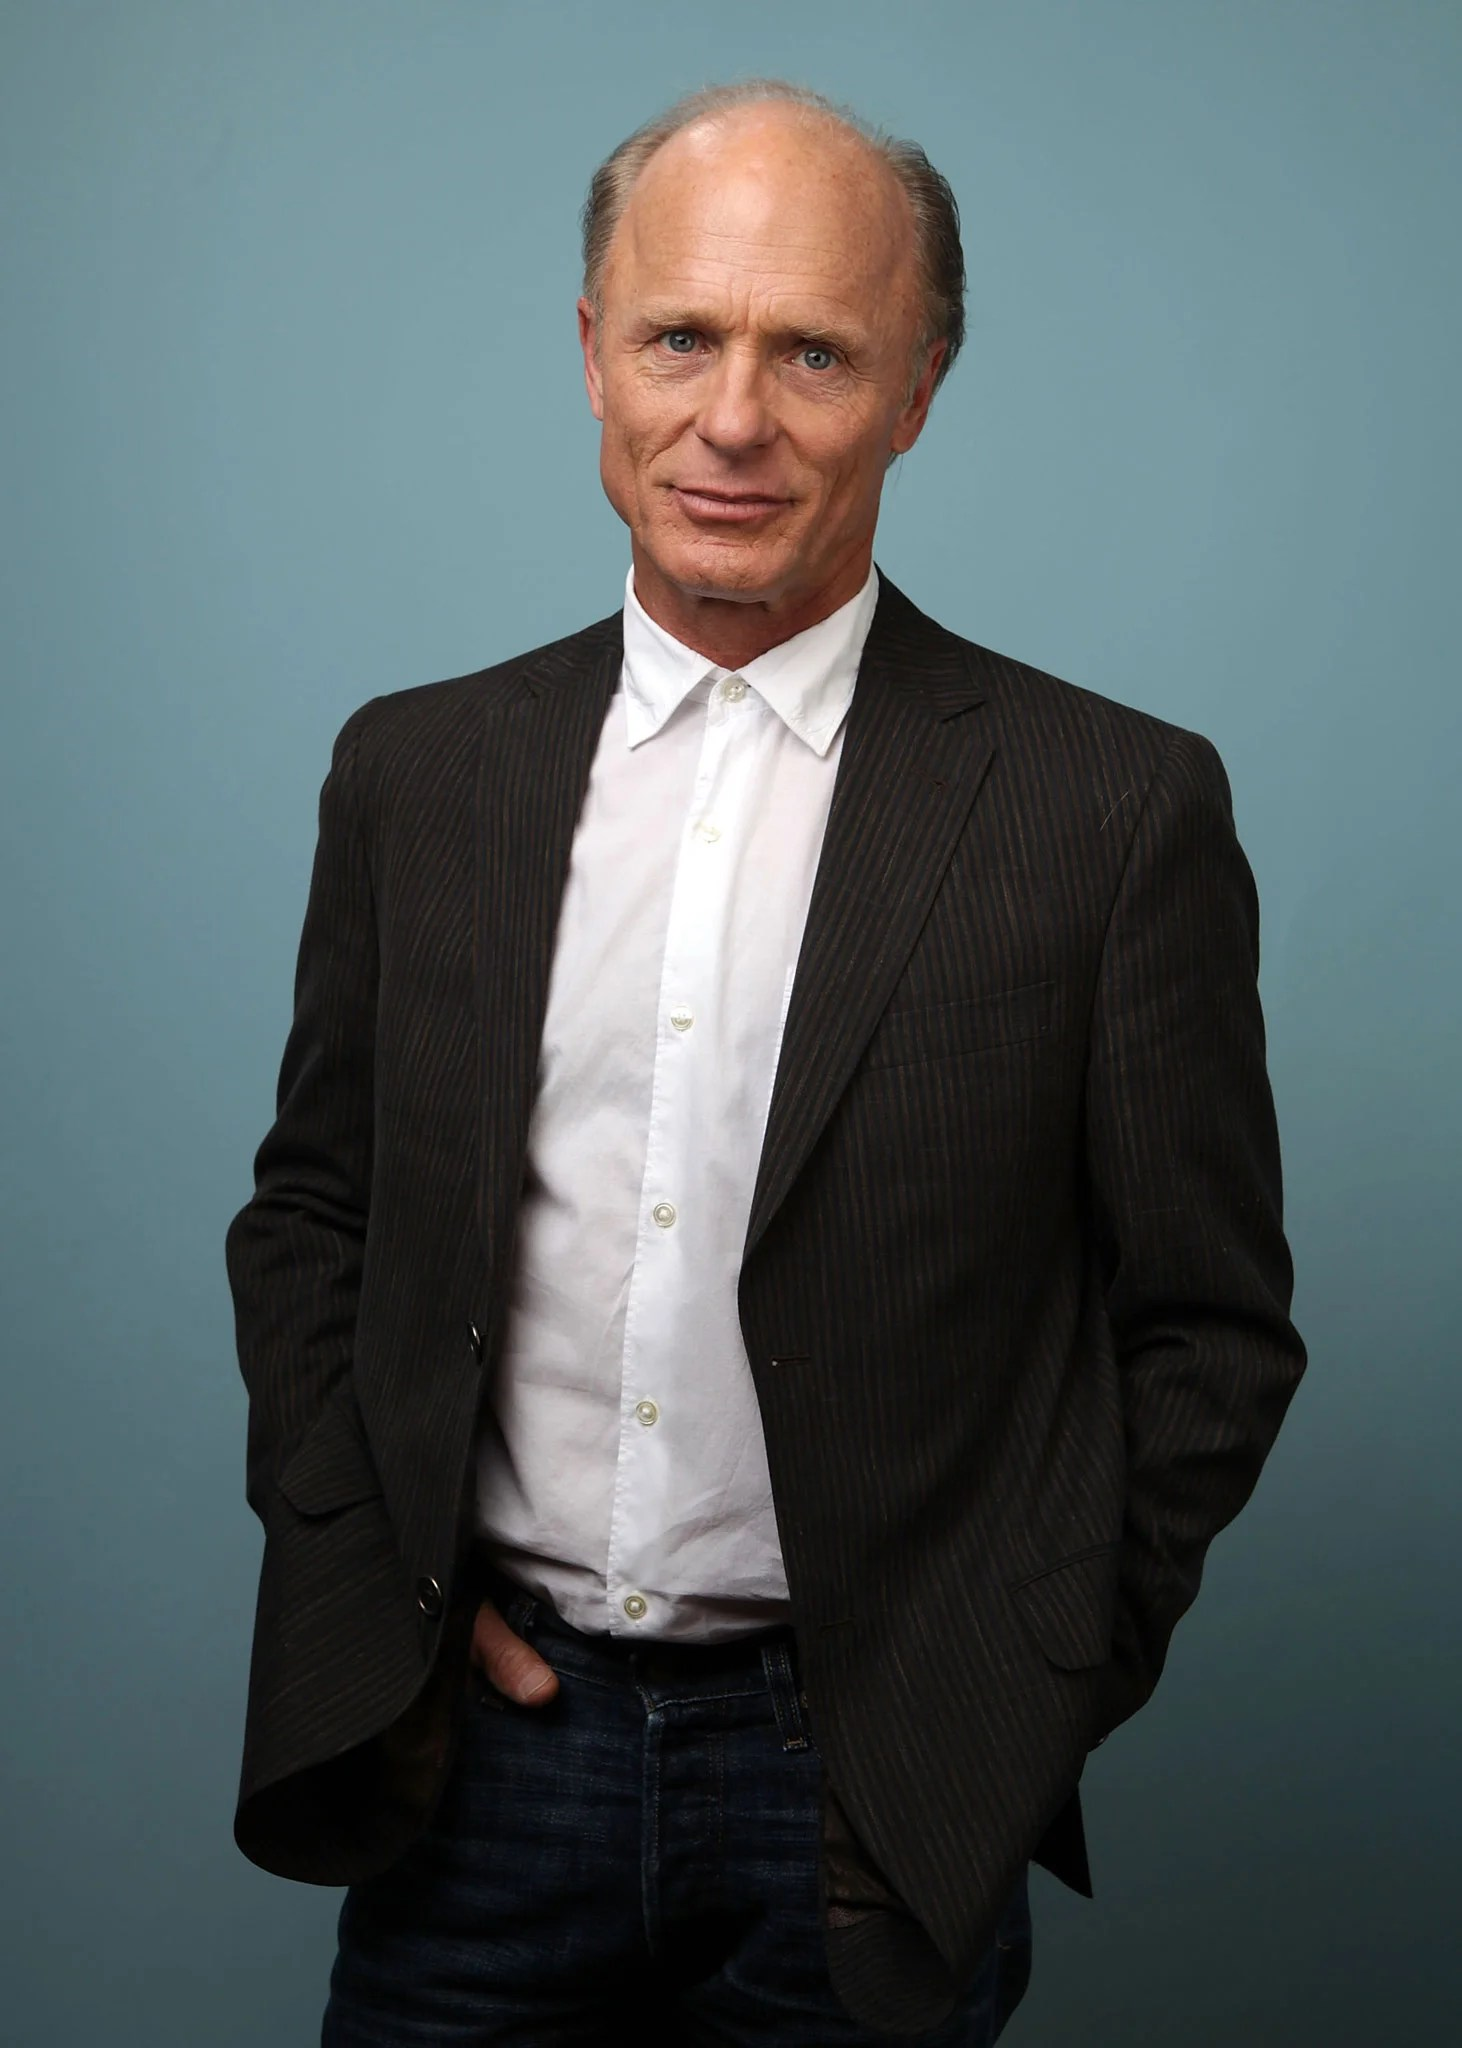 Ed Harris The actor on painting houses smashing chairs